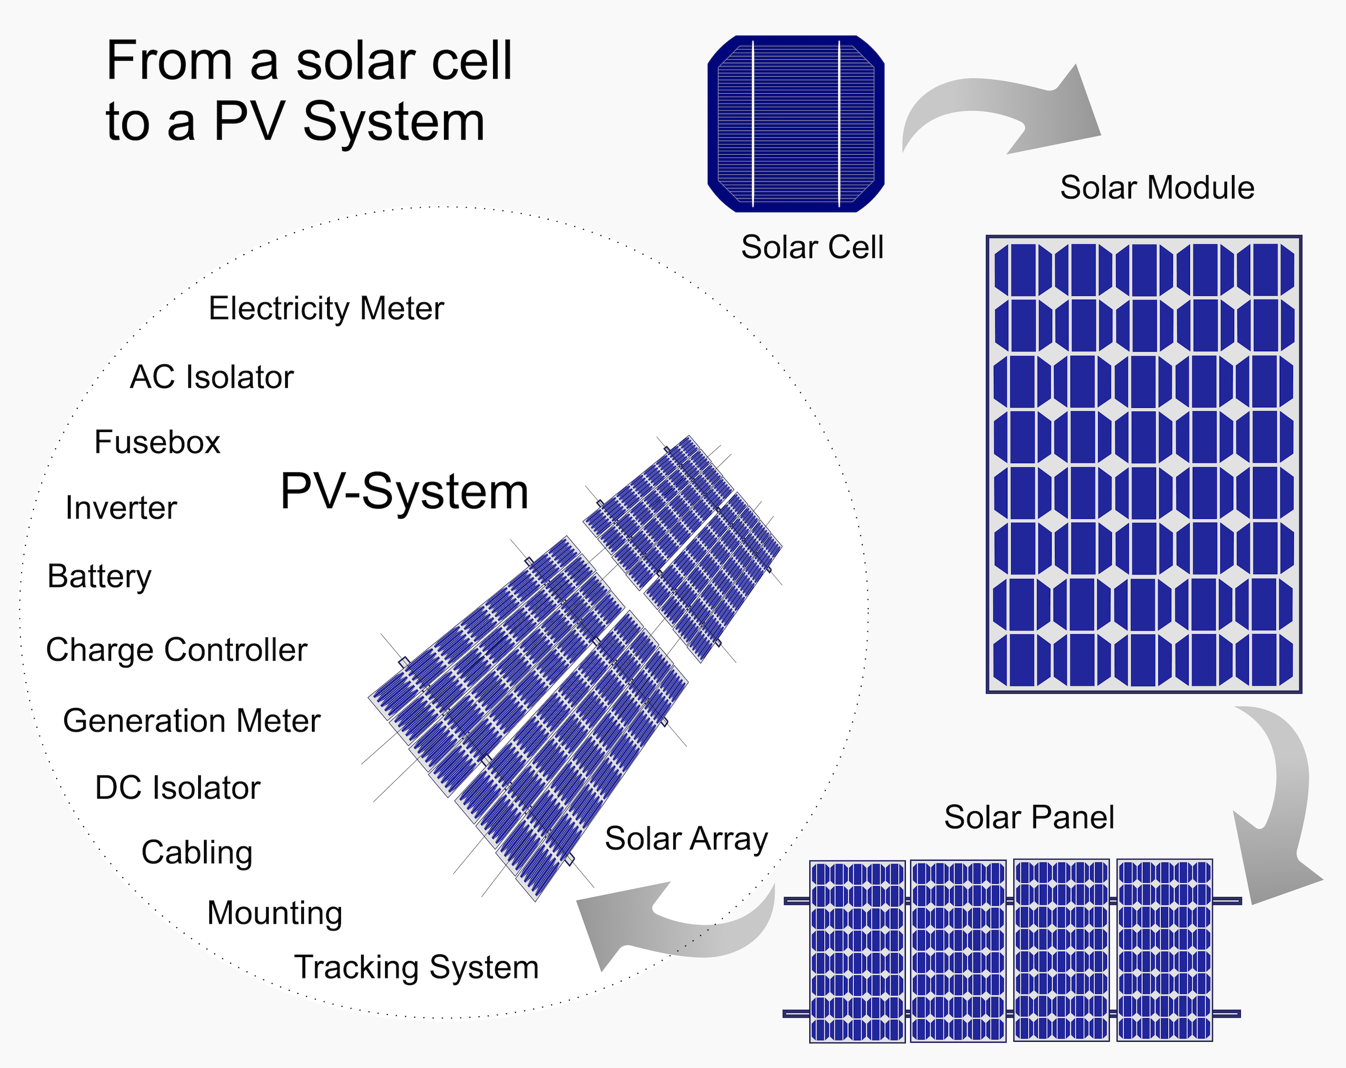 diagram of the photovoltaic system and its components starting with a solar cell and it construction into a solar array